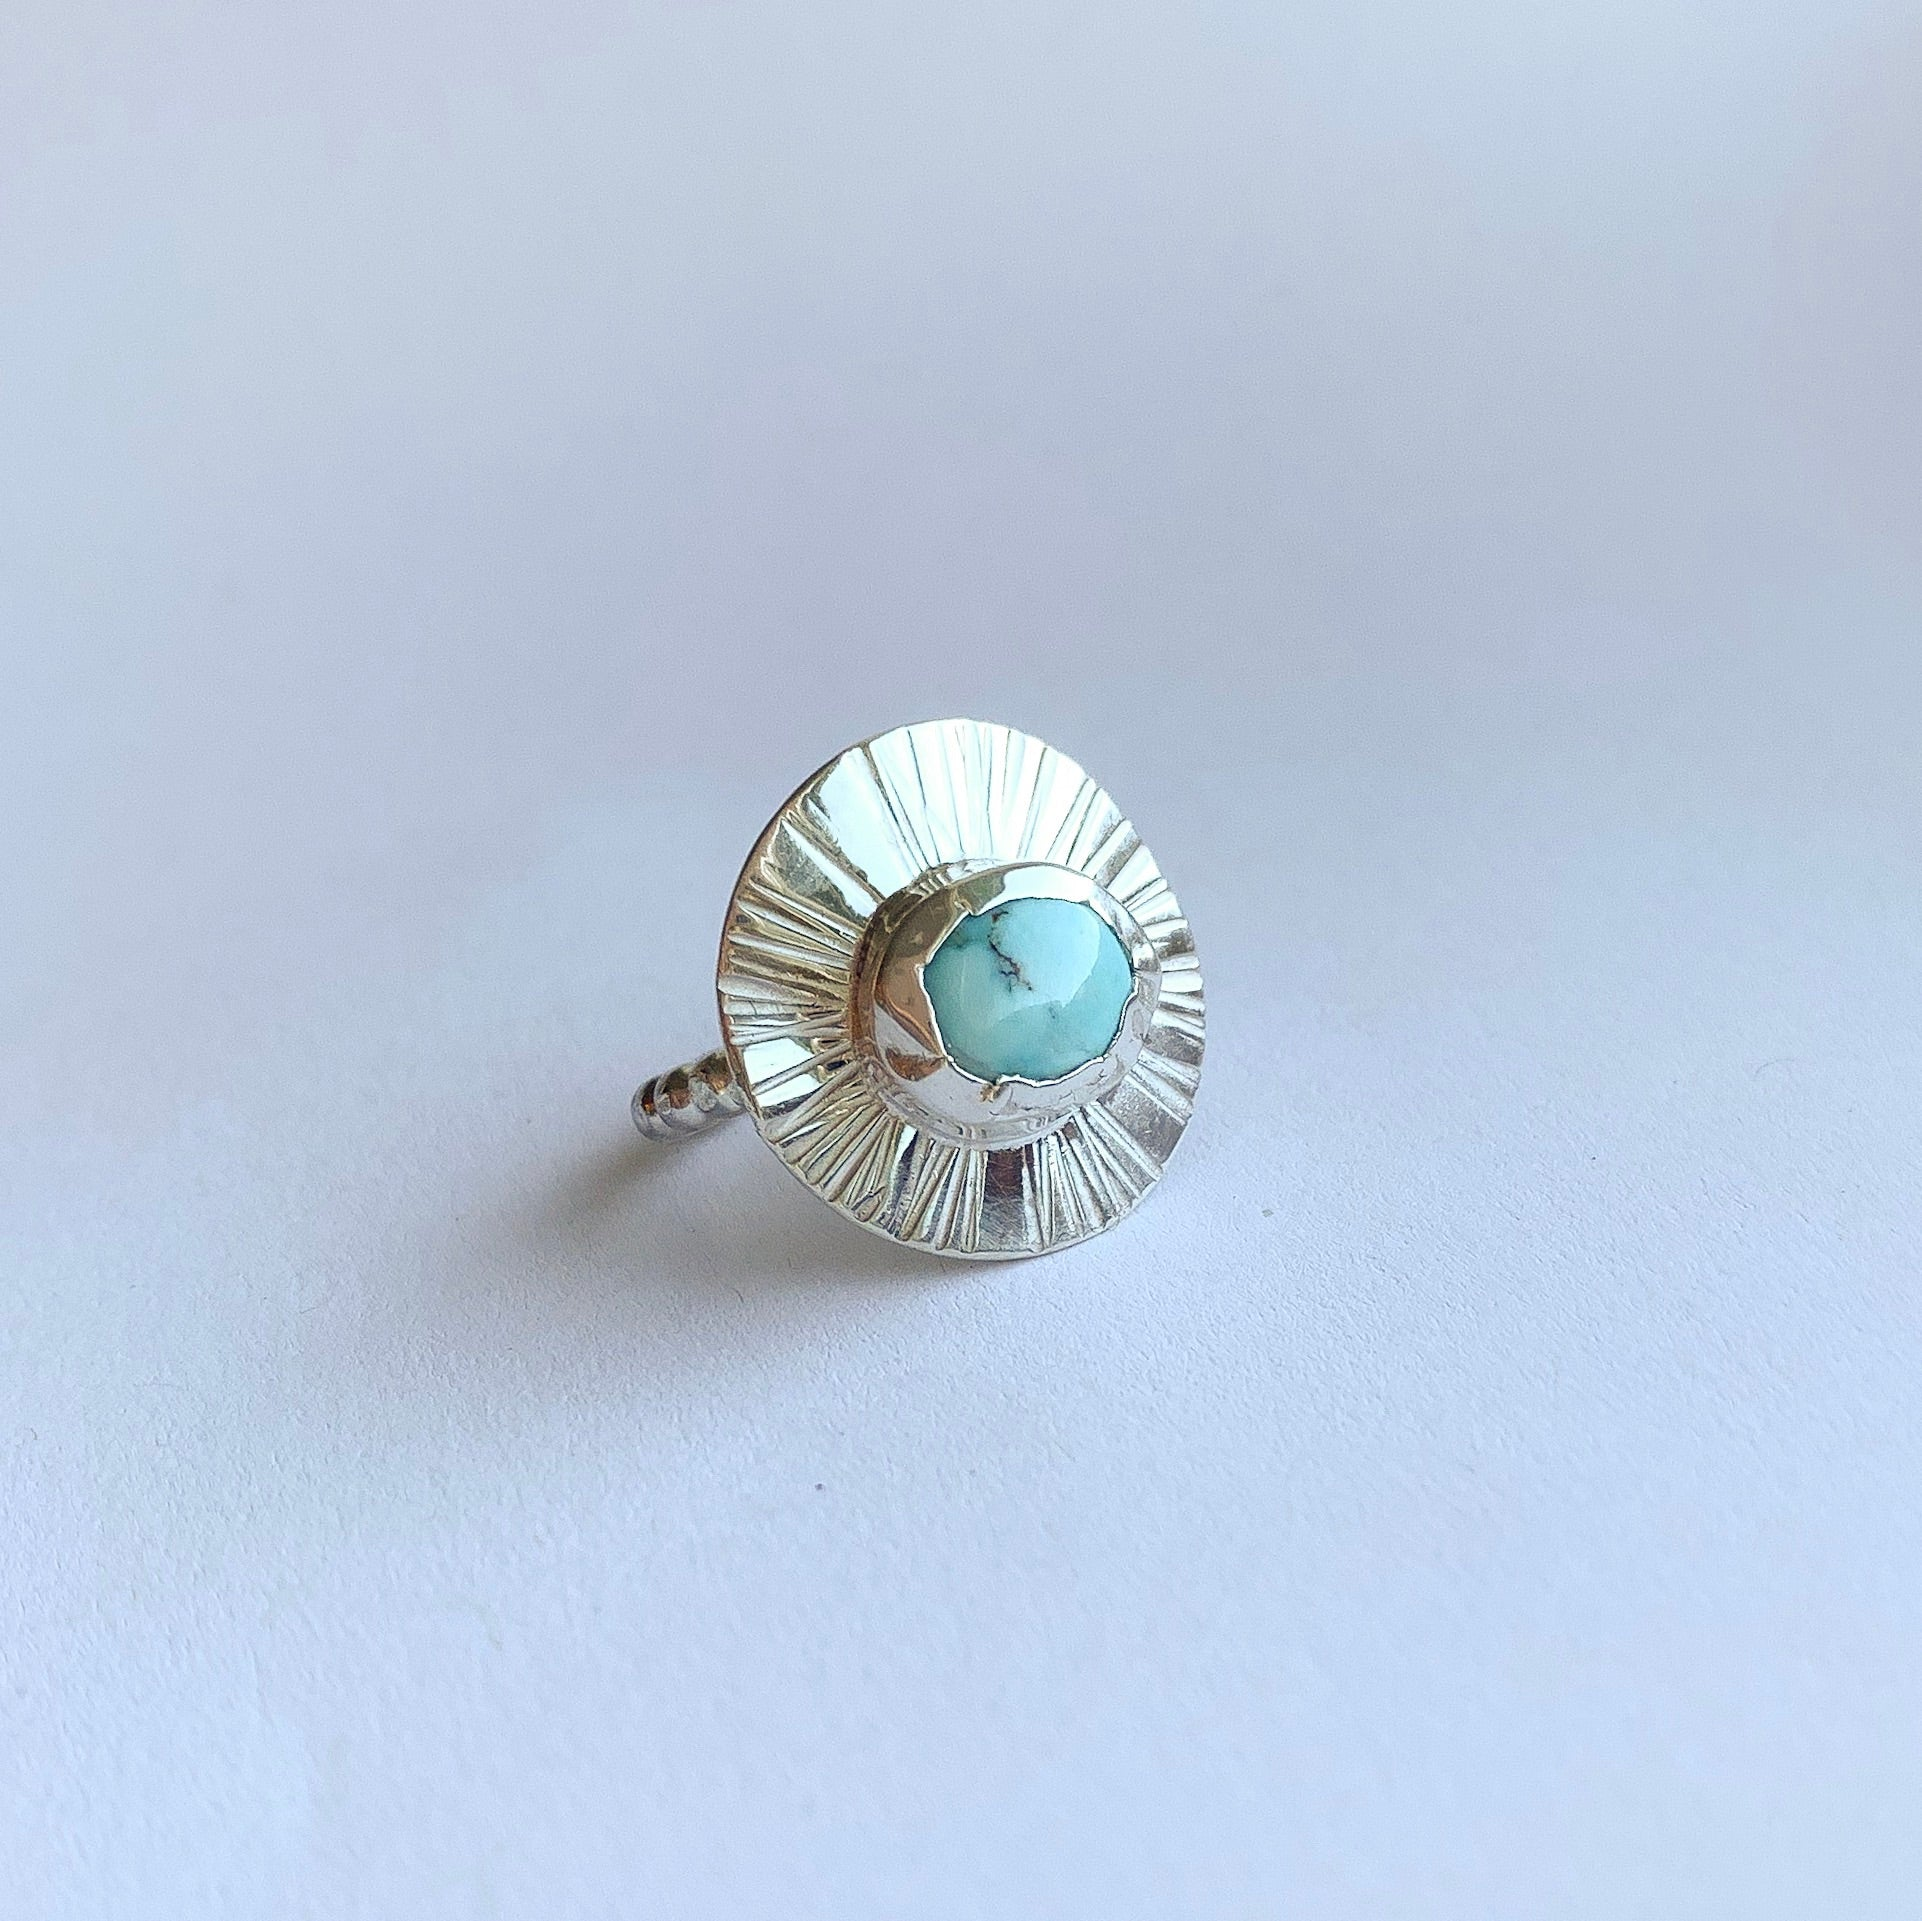 Sungazer ring - sterling silver - size 6.5